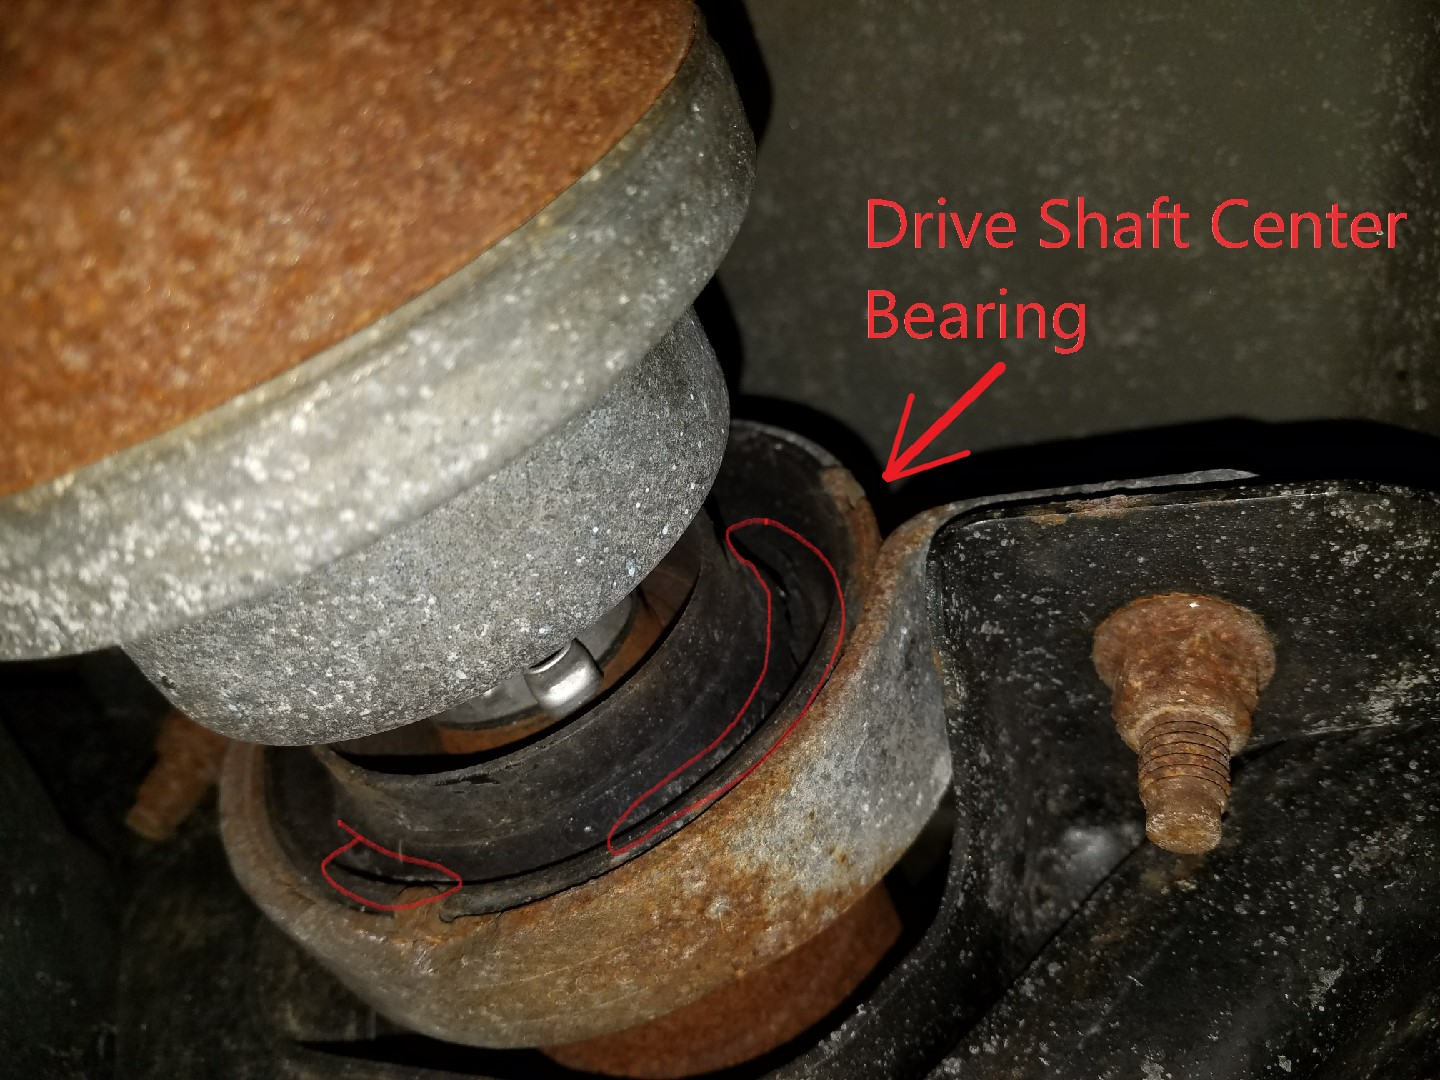 Drive Shaft Center Bearing Ford Explorer And Ford Ranger Forums